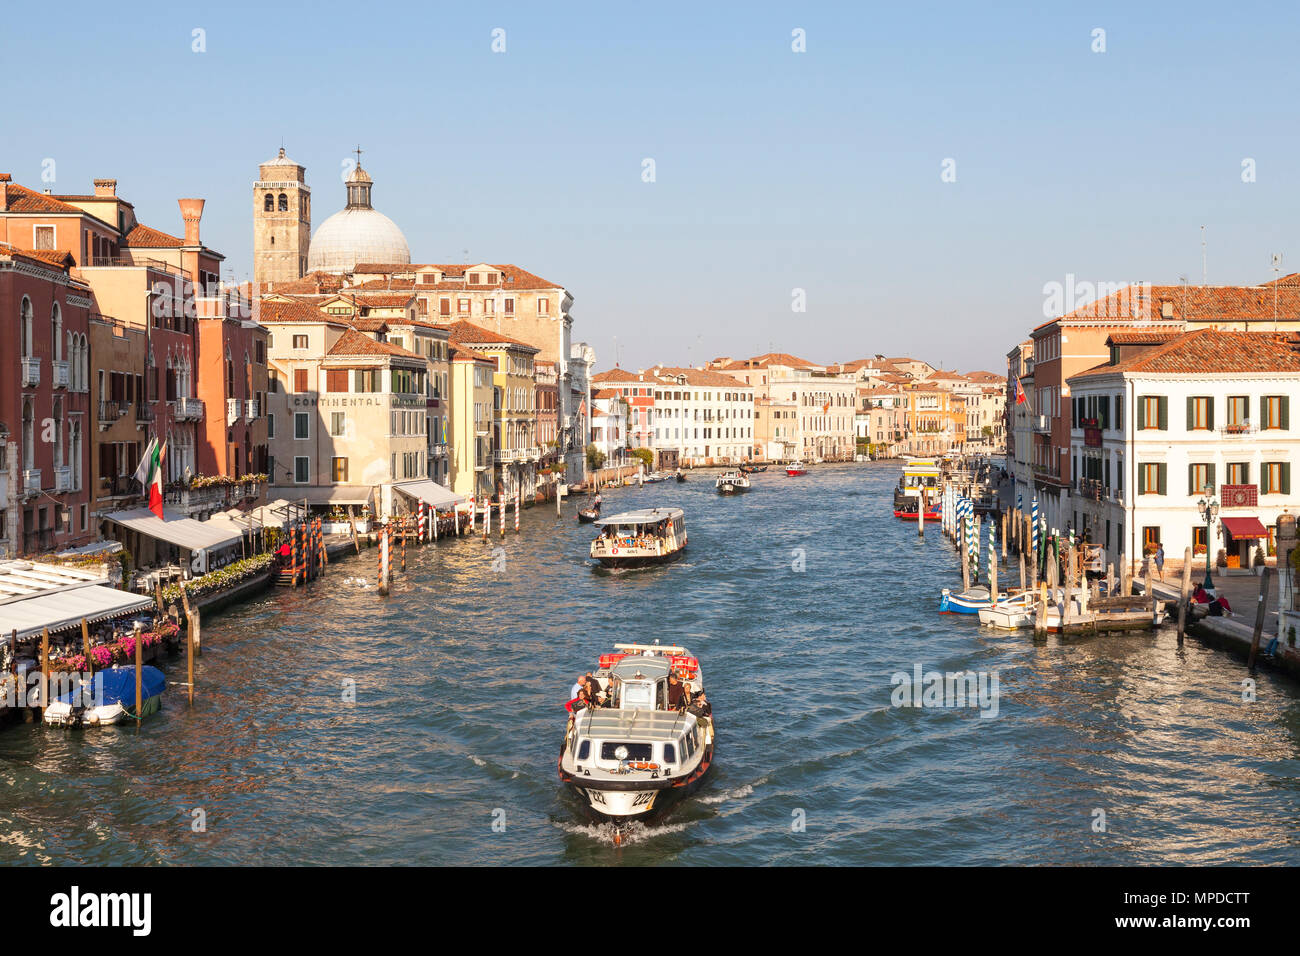 View of Grand Canal (Canal grande) at sunset from Scalzi Bridge, Venice, Veneto, Italy with vaporettos, (water bus, waterbus) full of tourists - Stock Image